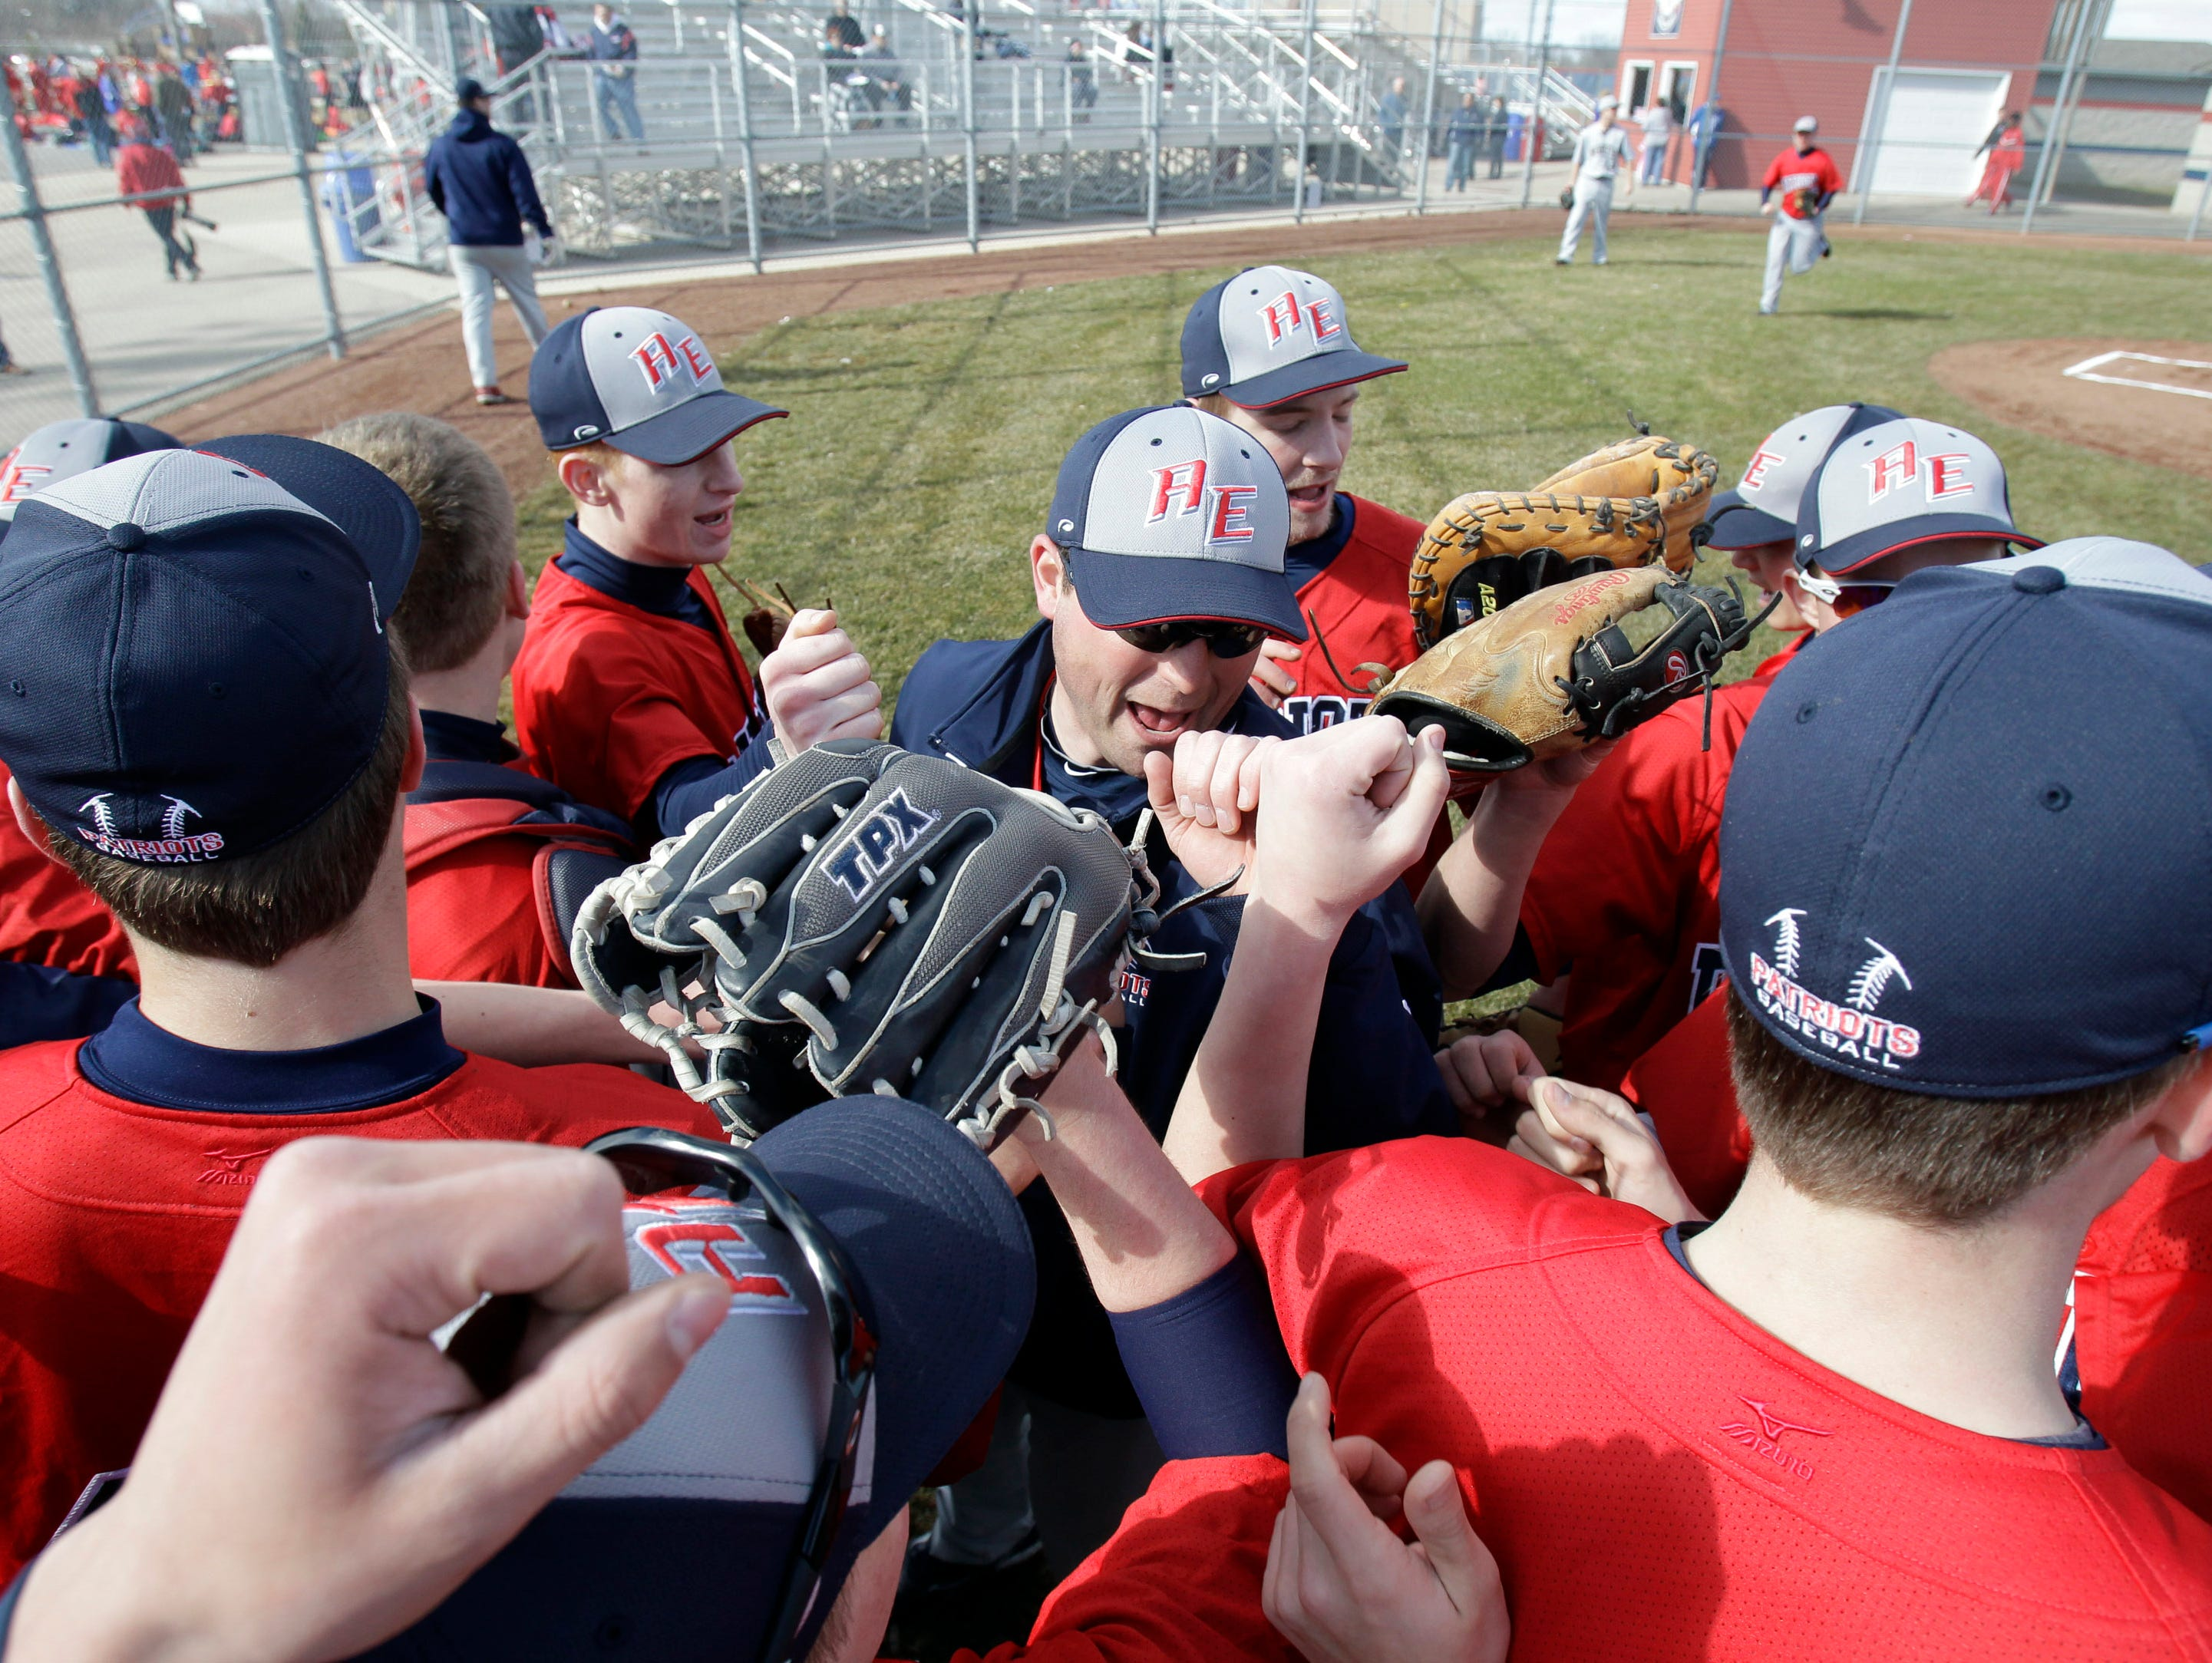 Appleton East will face Oshkosh North on Thursday in a Fox Valley Association baseball game at Neuroscience Group Field at Fox Cities Stadium in Grand Chute.